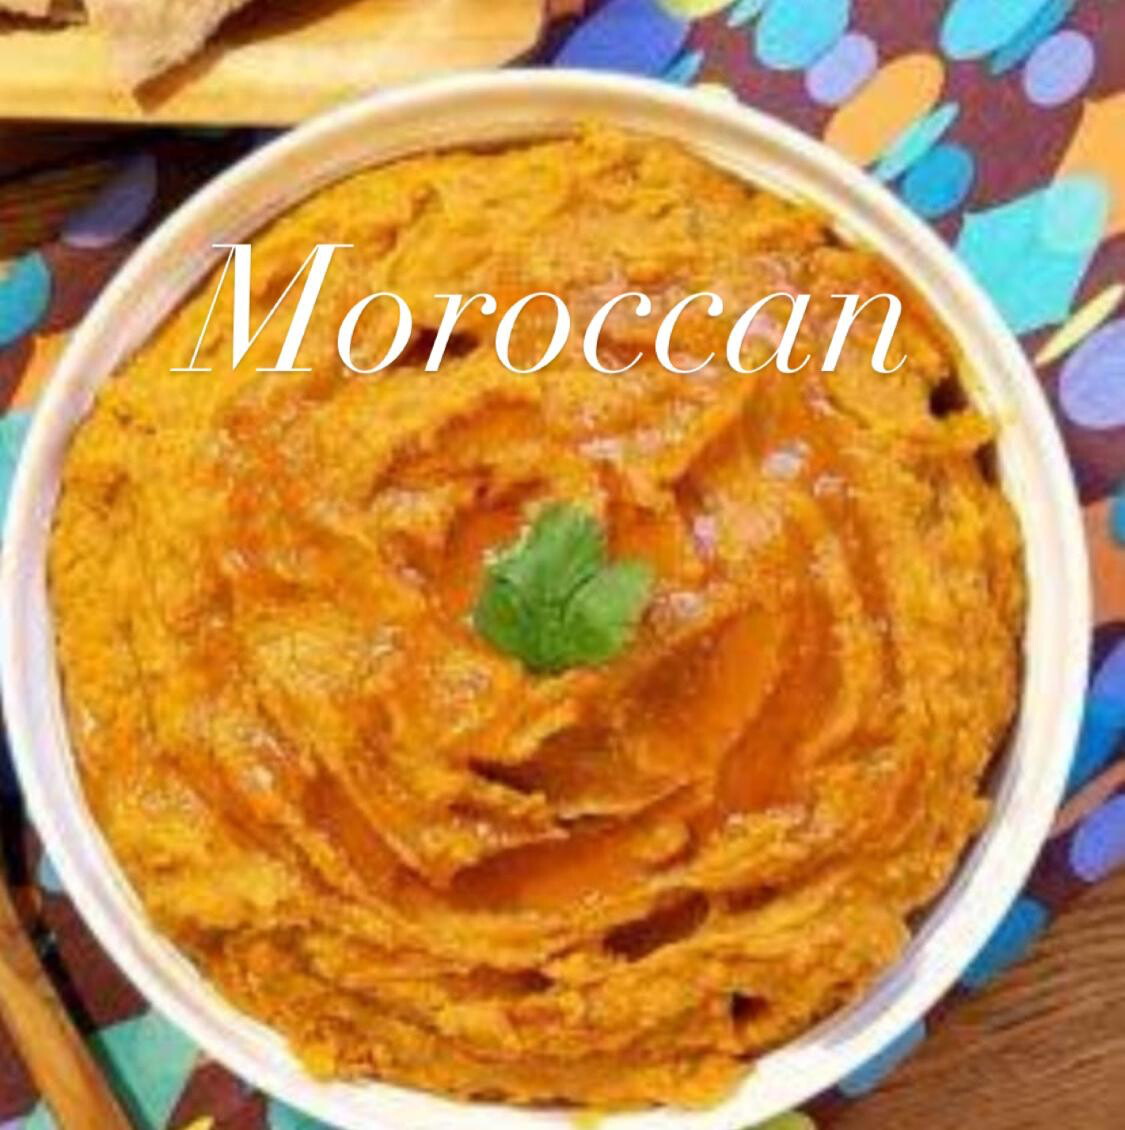 Hummus (Moroccan) 80g x 3 Lunch snack size